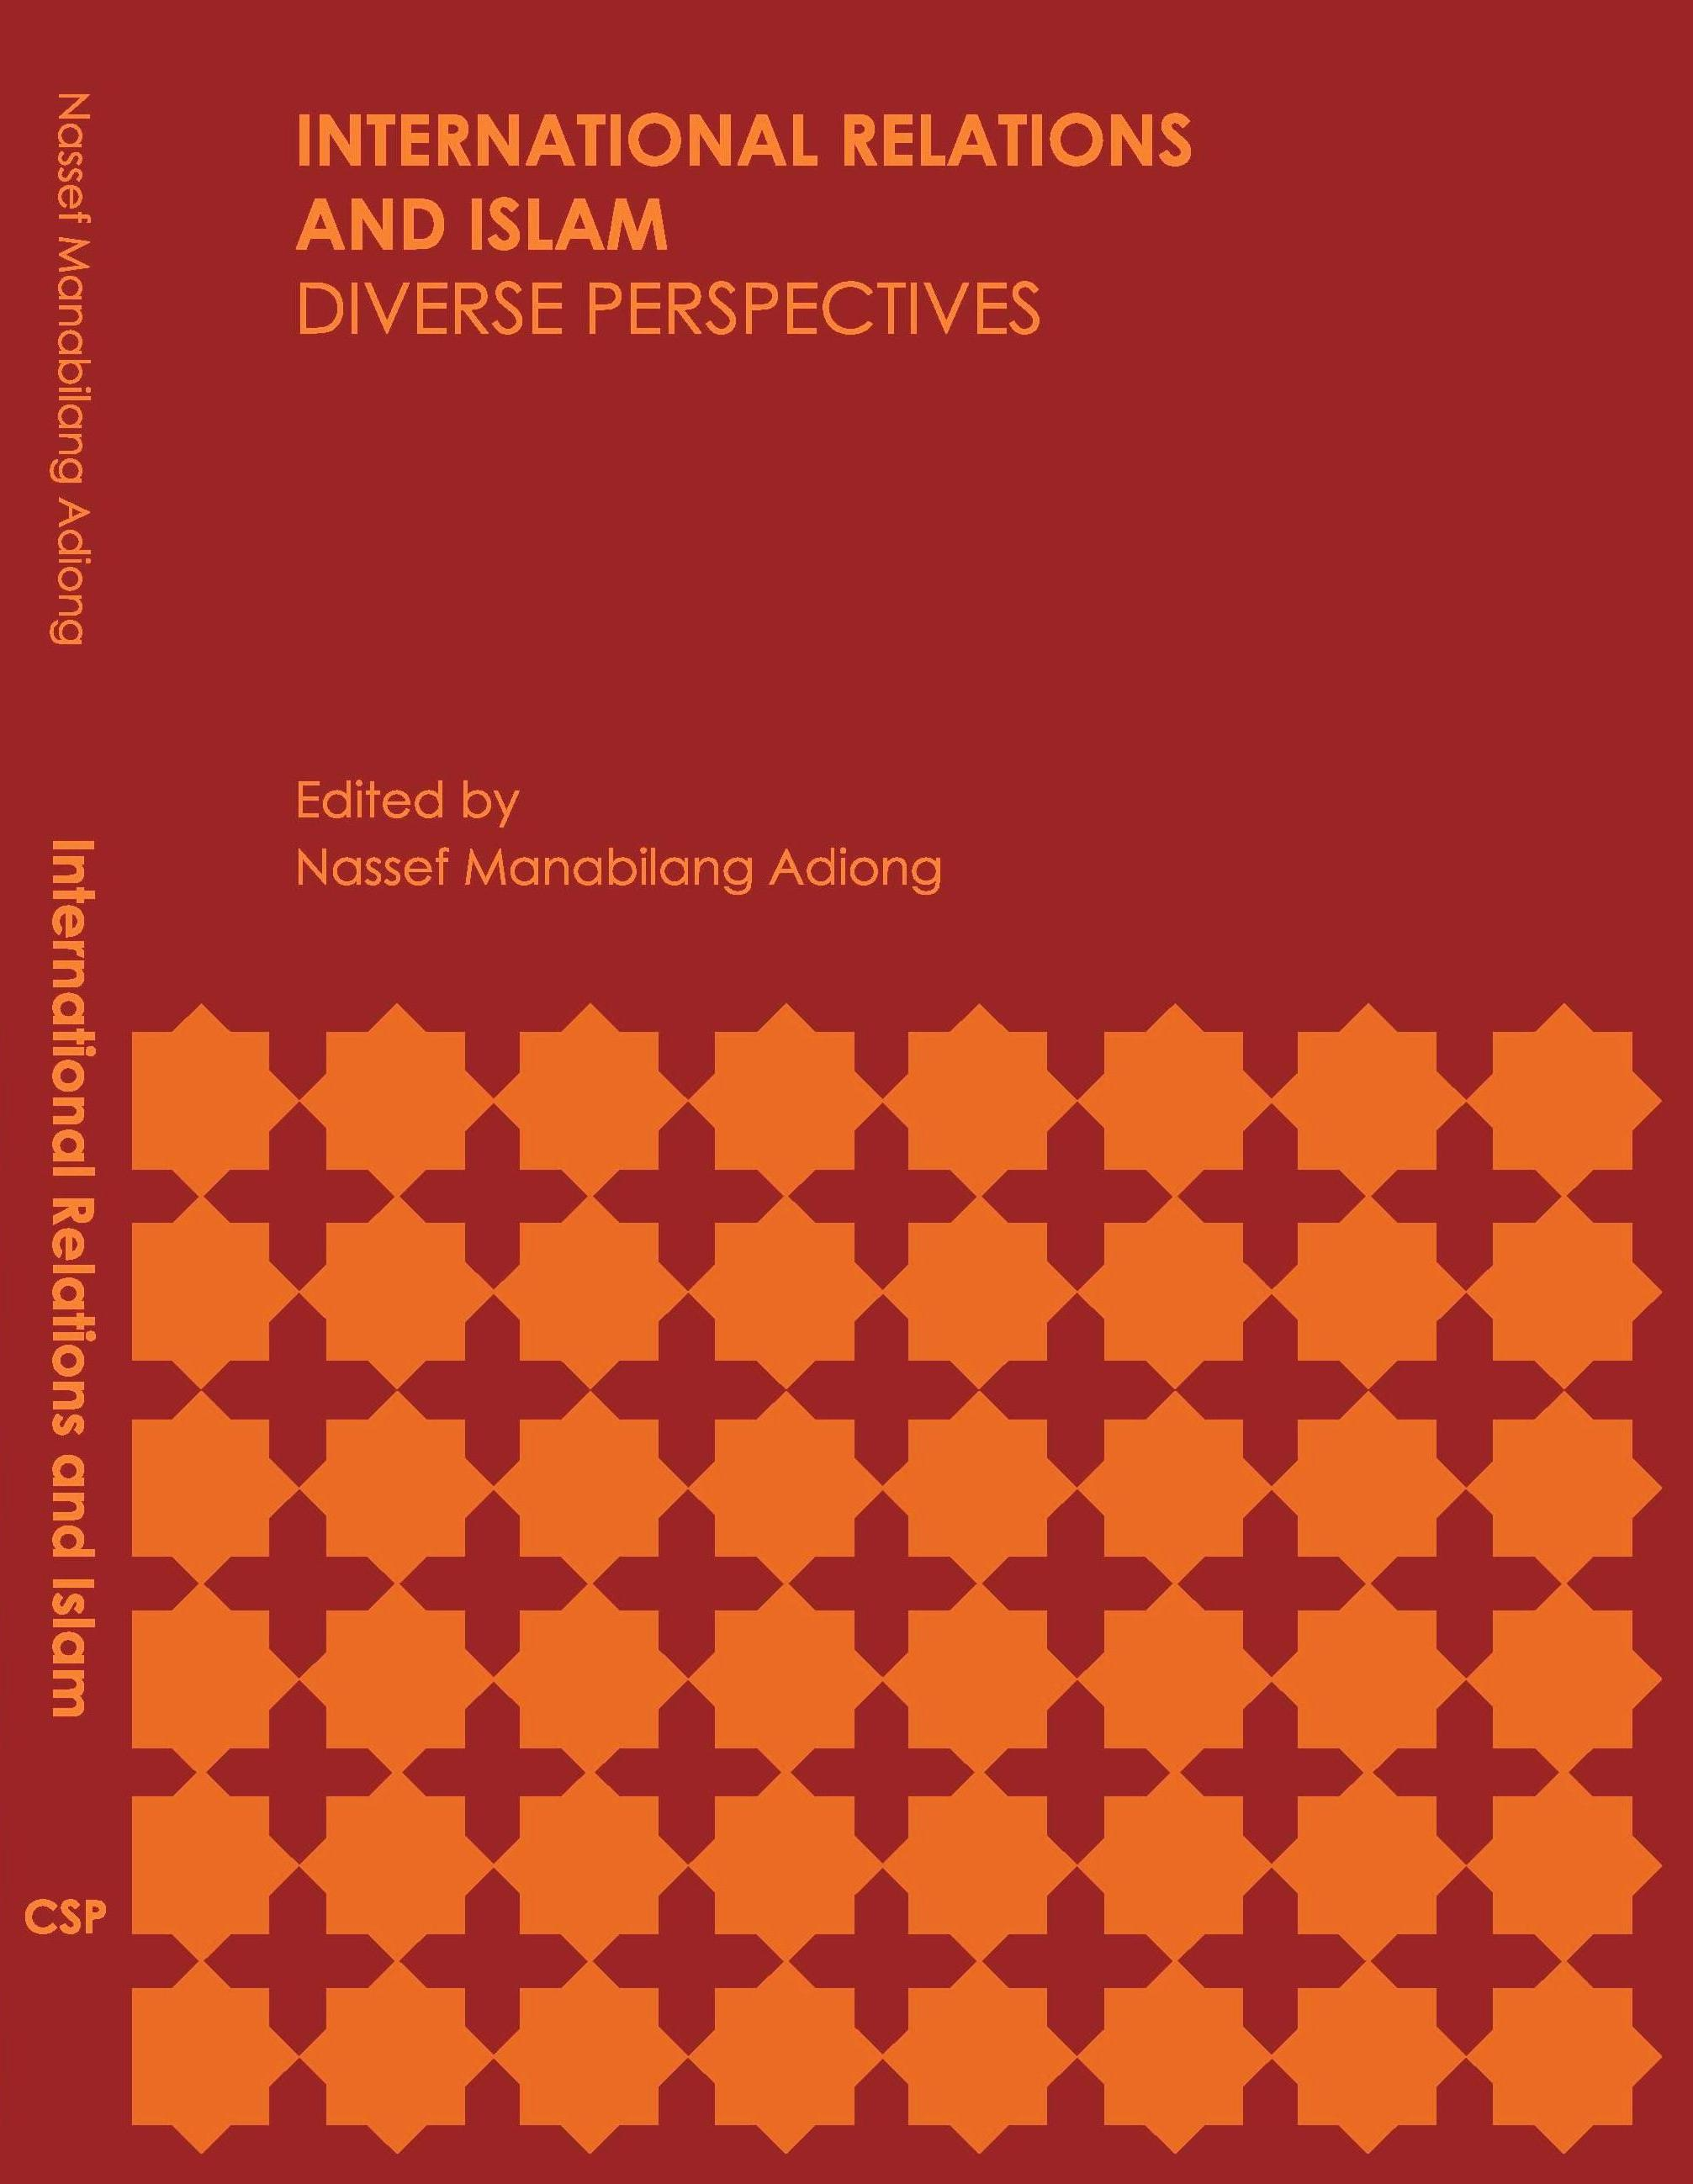 book chapters essays manabilang adiong phd in deina abdelkader manabilang adiong and raffaele mauriello eds islam and international relations contributions to theory and practice